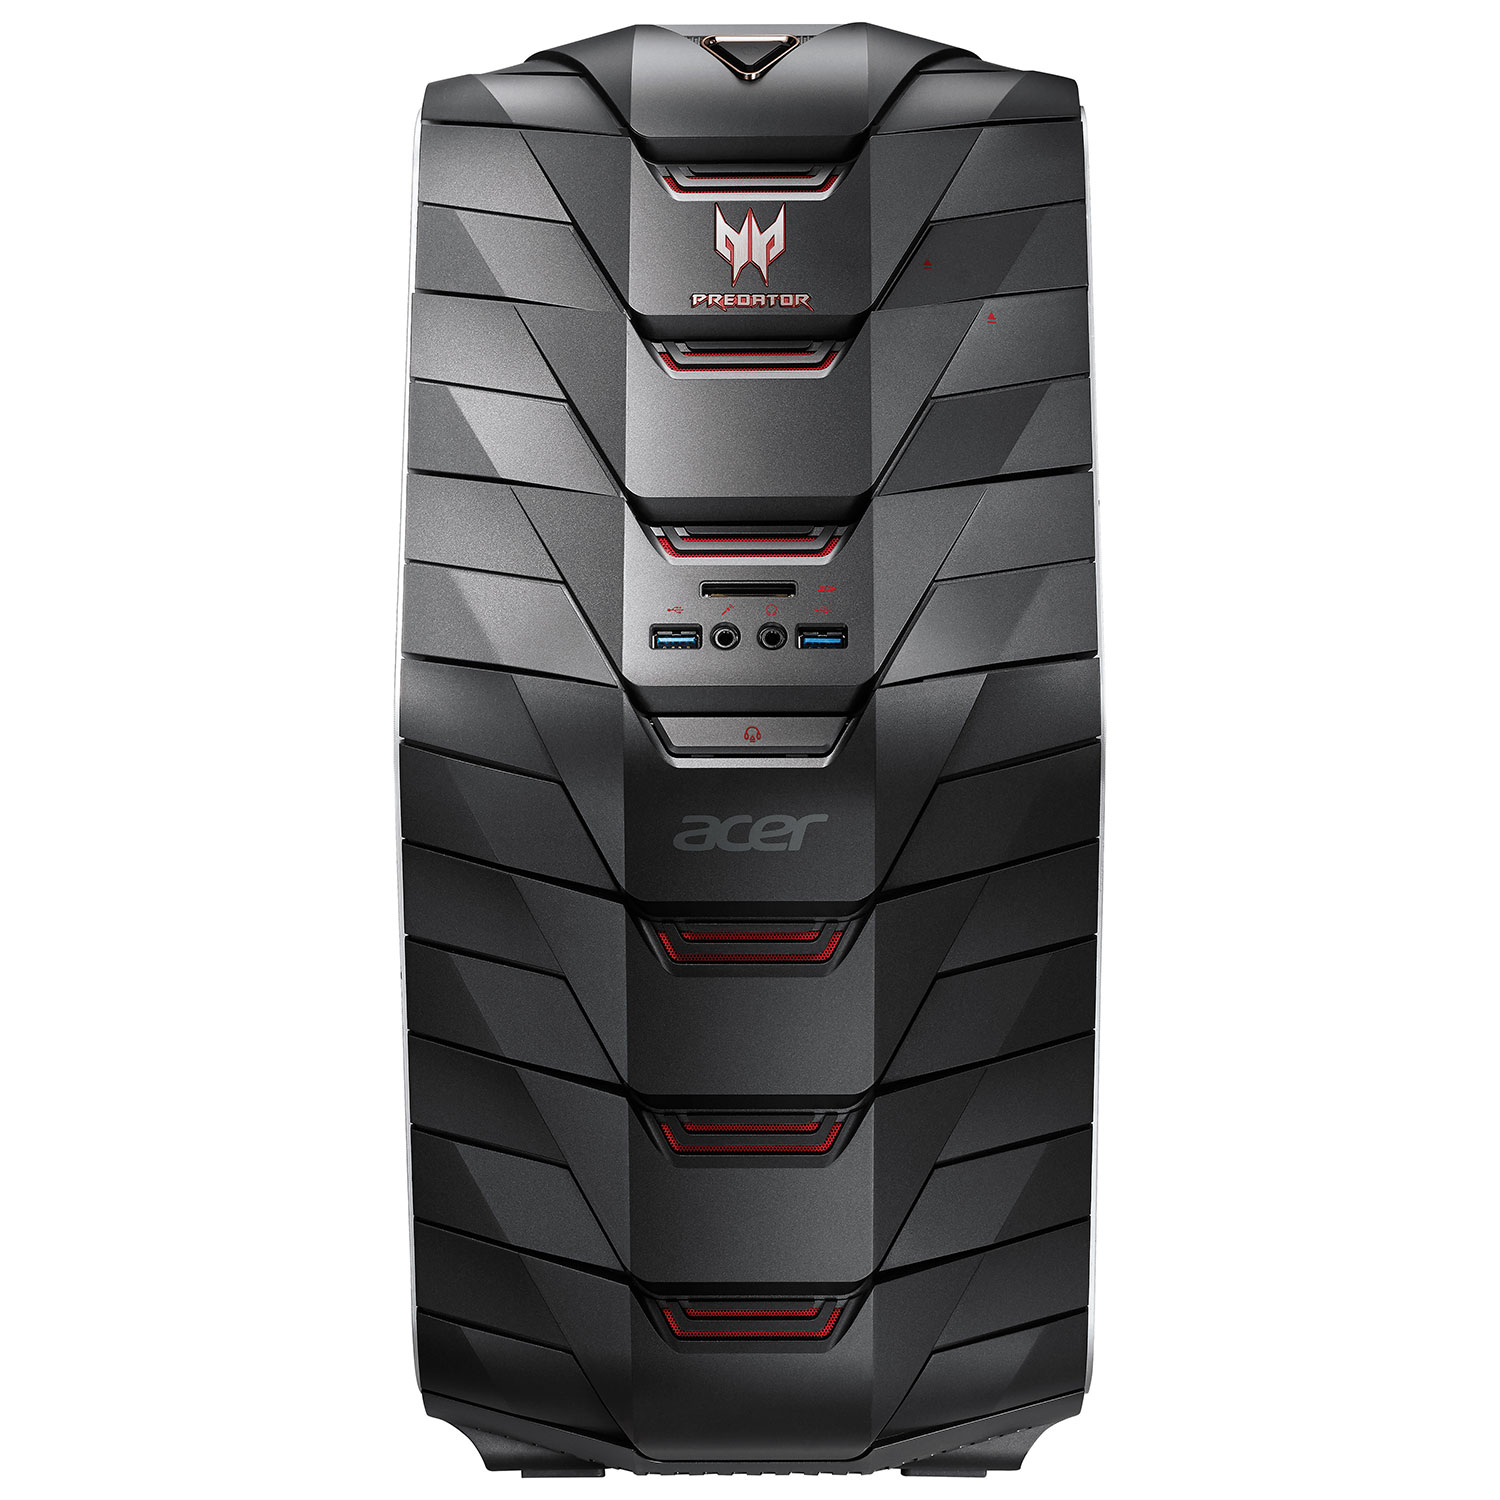 Acer Predator G6 Gaming PC